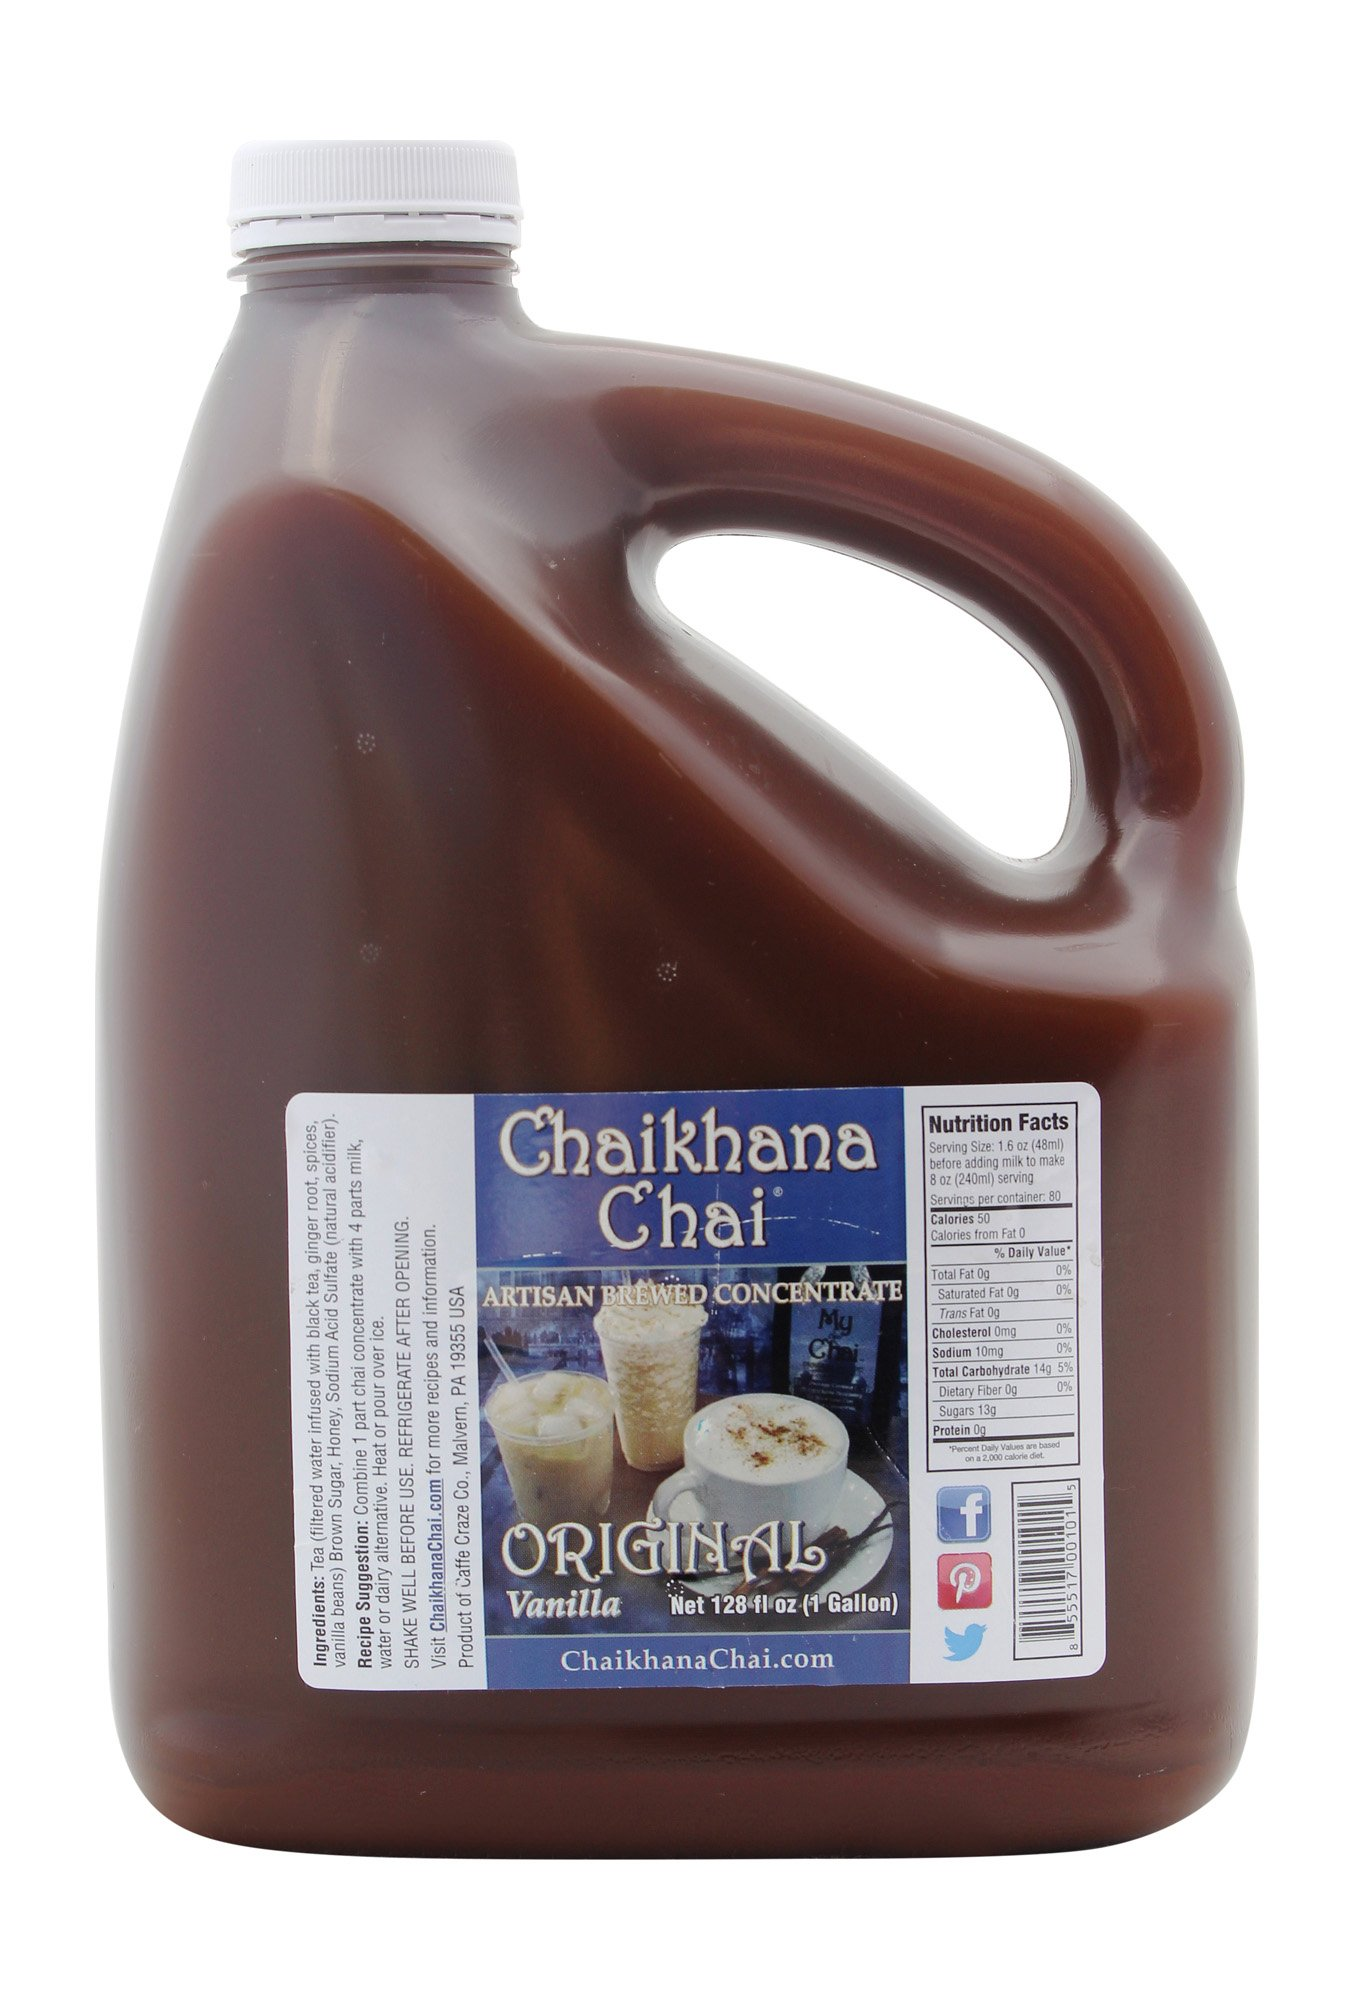 Chaikhana Chai - Original Vanilla Chai Concentrate - Slow Brewed with Organic Black Tea, Real Vanilla Beans and Fresh Crushed Spices - 1 Gallon - Makes (80) 8 oz. Drinks - For Home Use and Restaurants